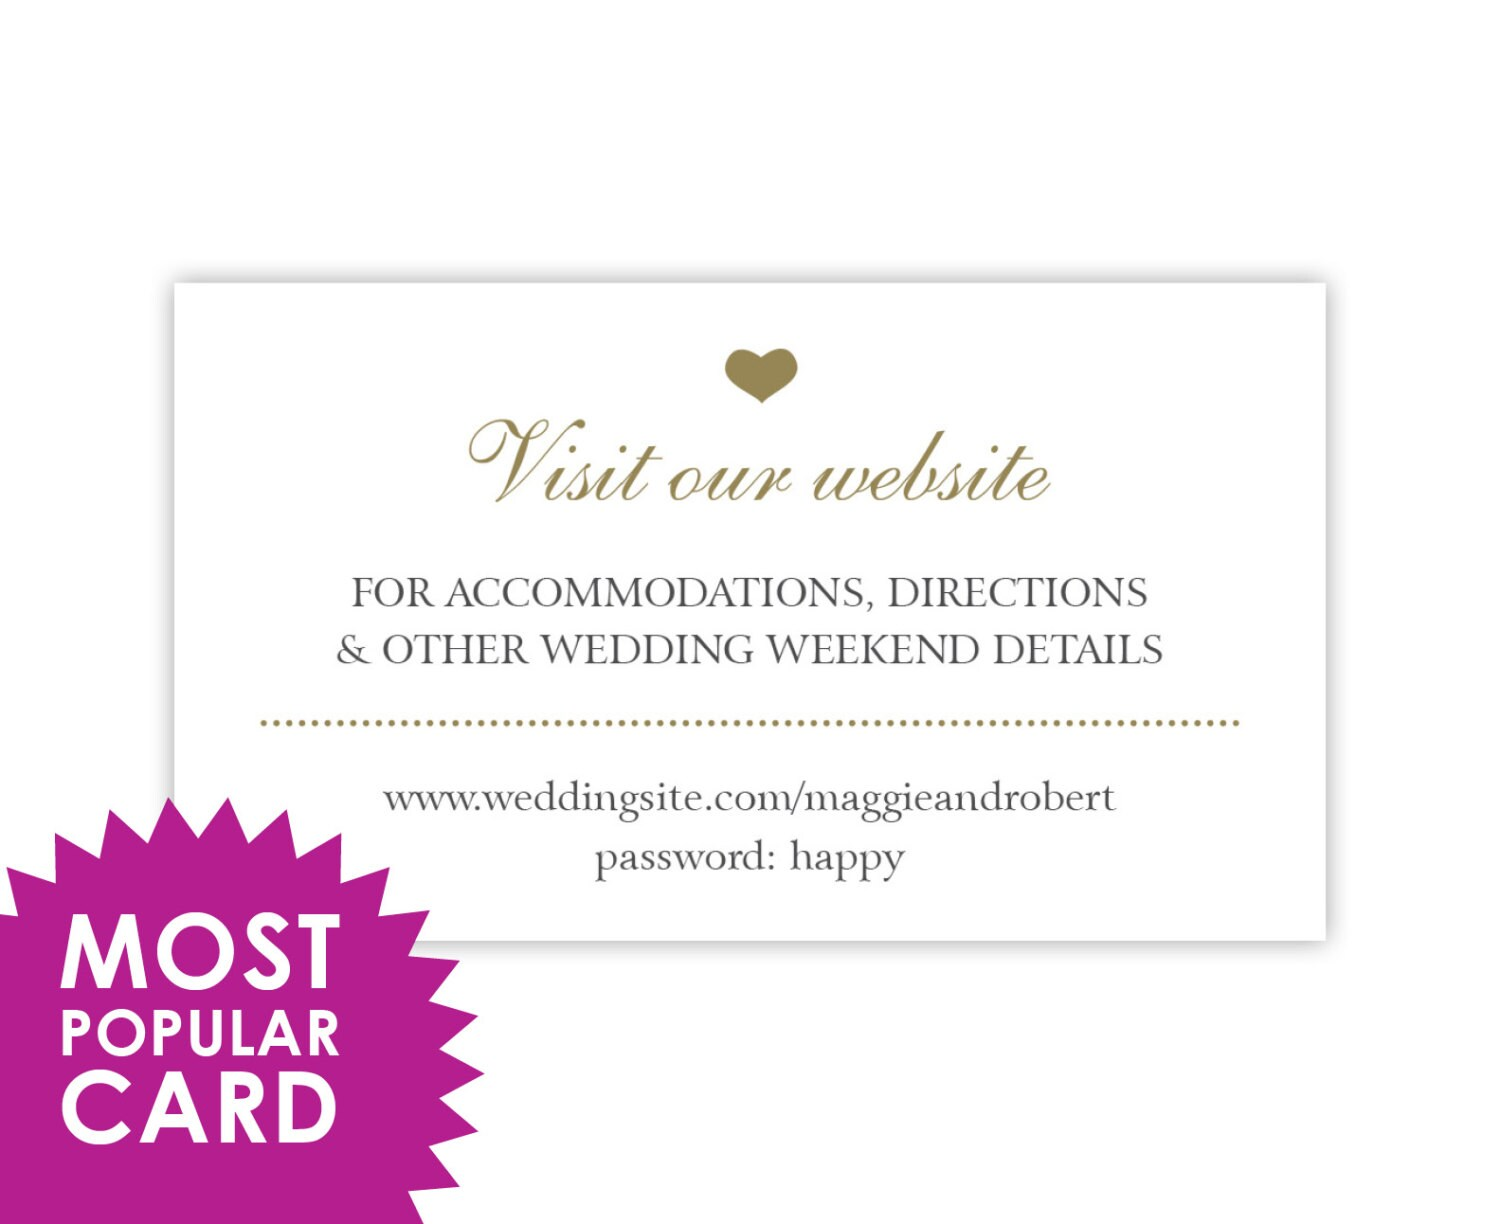 How Many Gifts To Register For Wedding: Wedding Website Cards Enclosure Cards Wedding Hashtag Cards